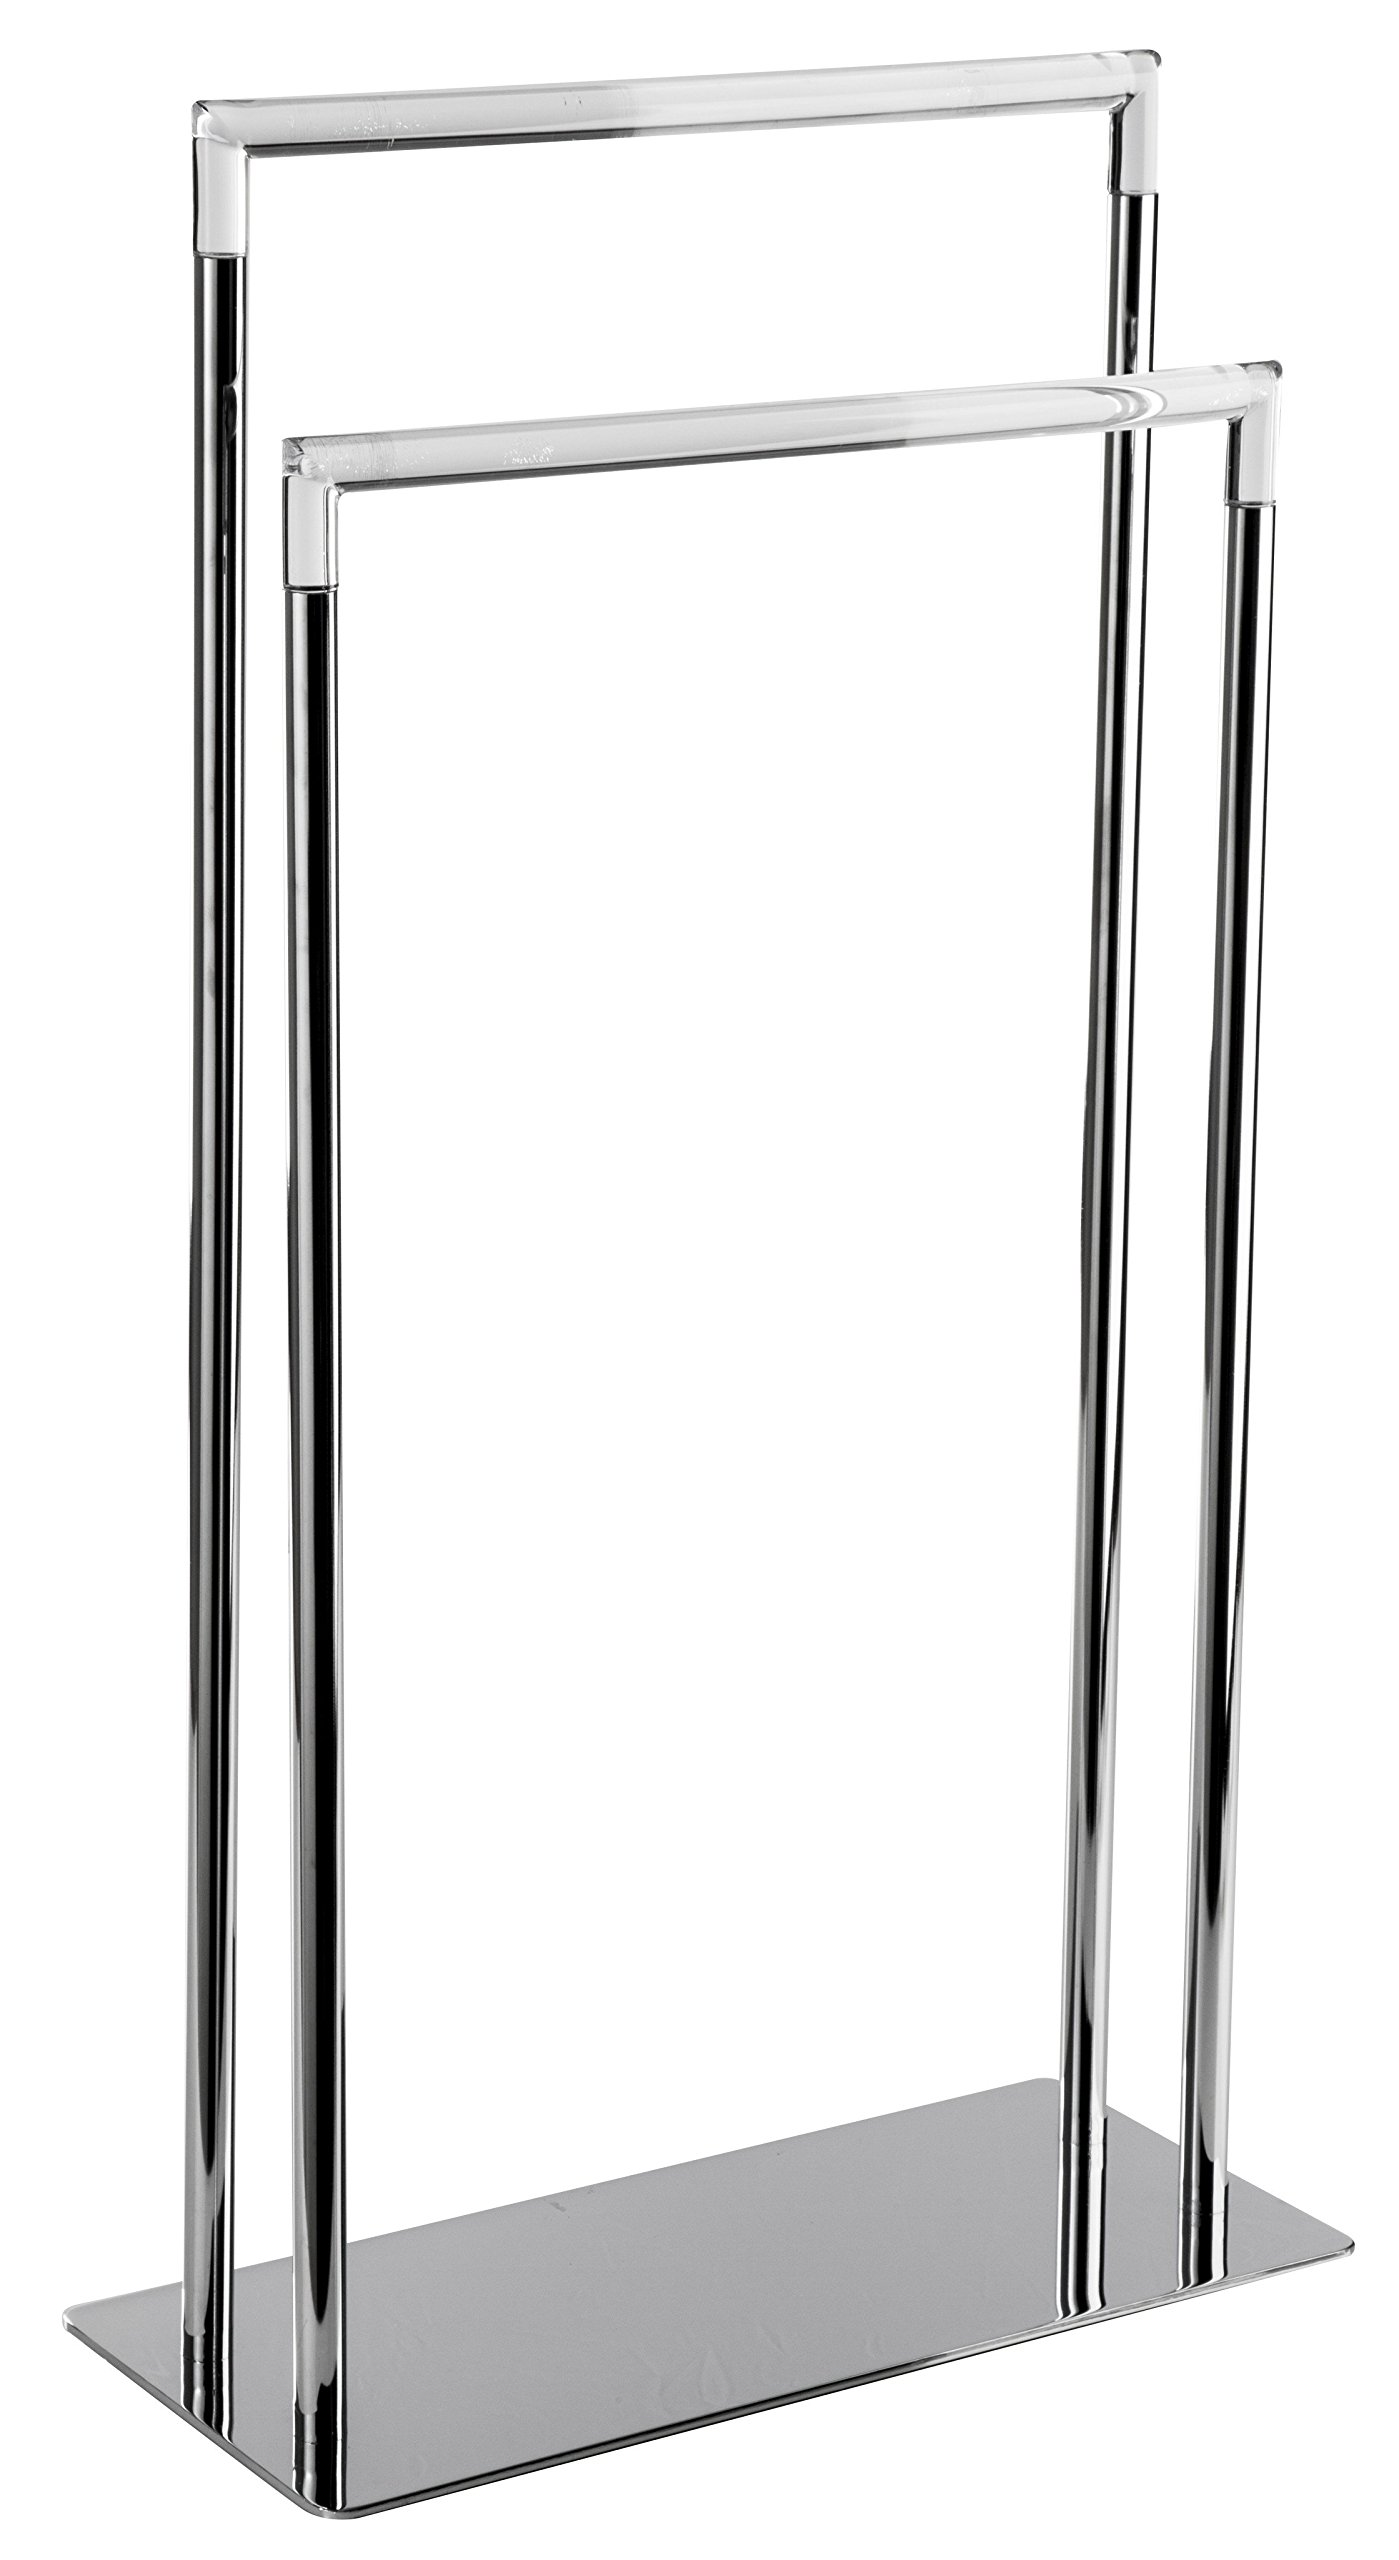 CP Standing Double Towel Rack for Bathroom Spa Towel Hanger, Brass, Acrylic